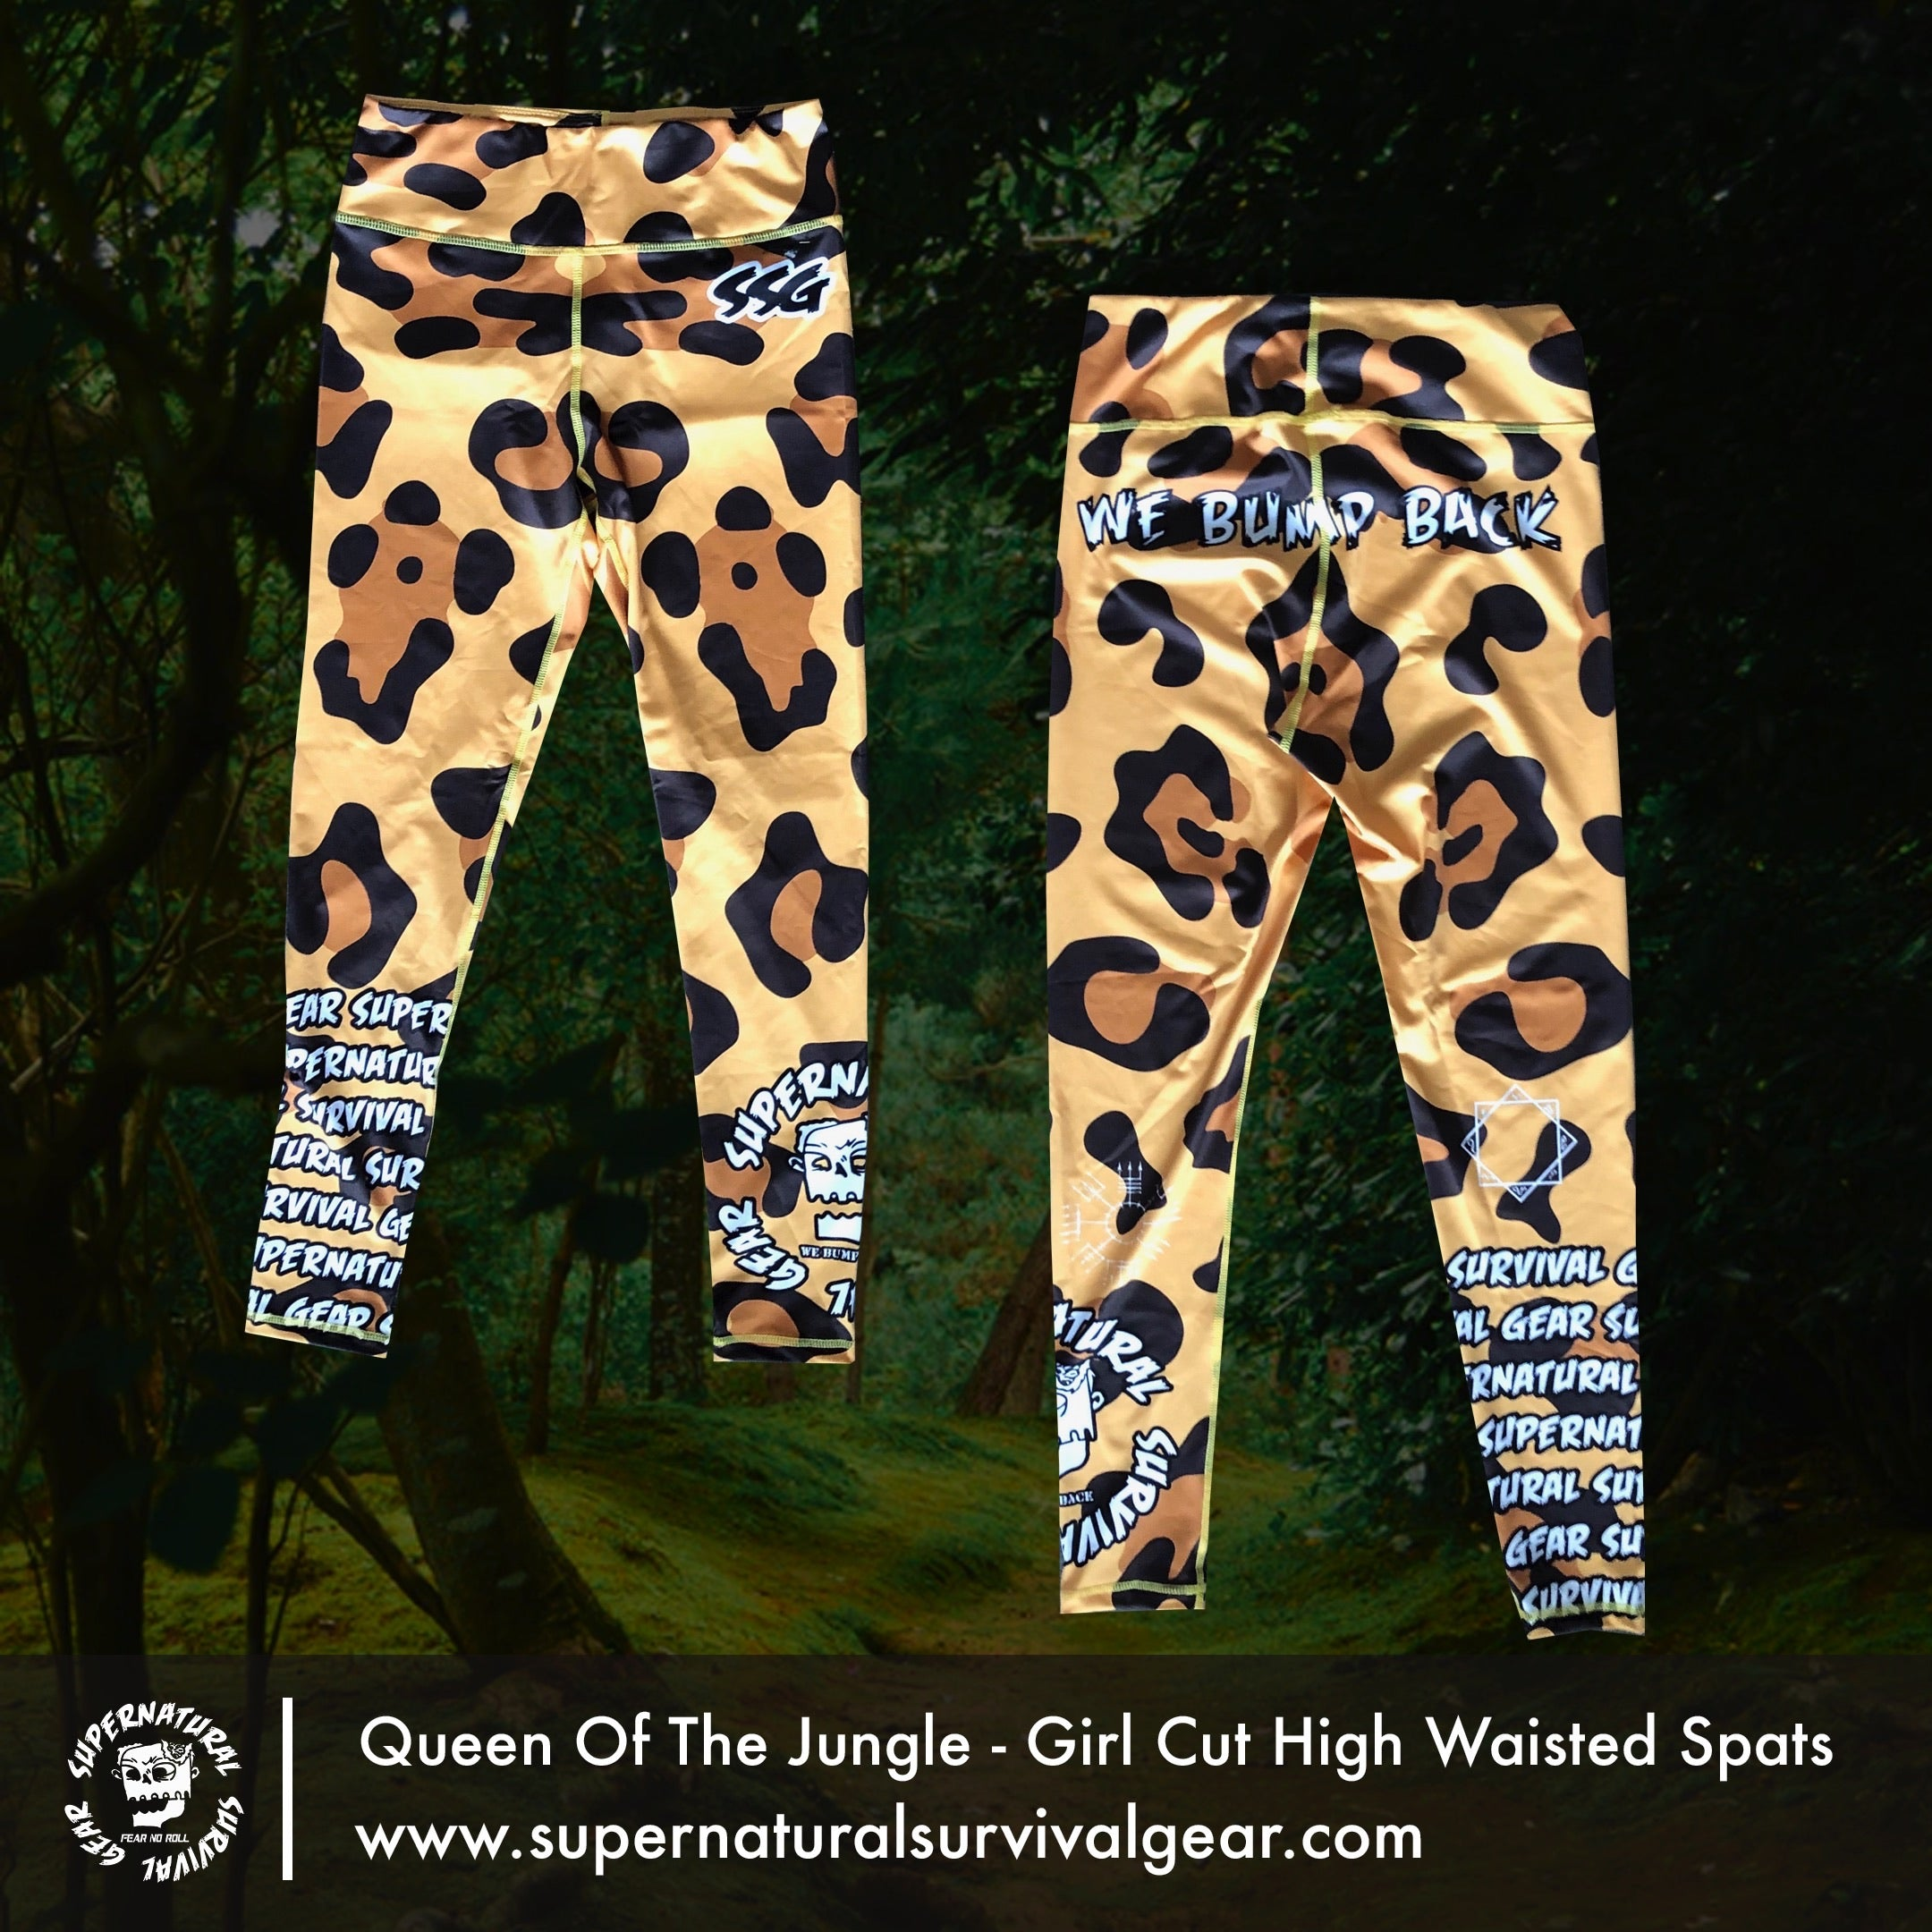 Queen Of The Jungle Woman's Cut High Waisted Spats